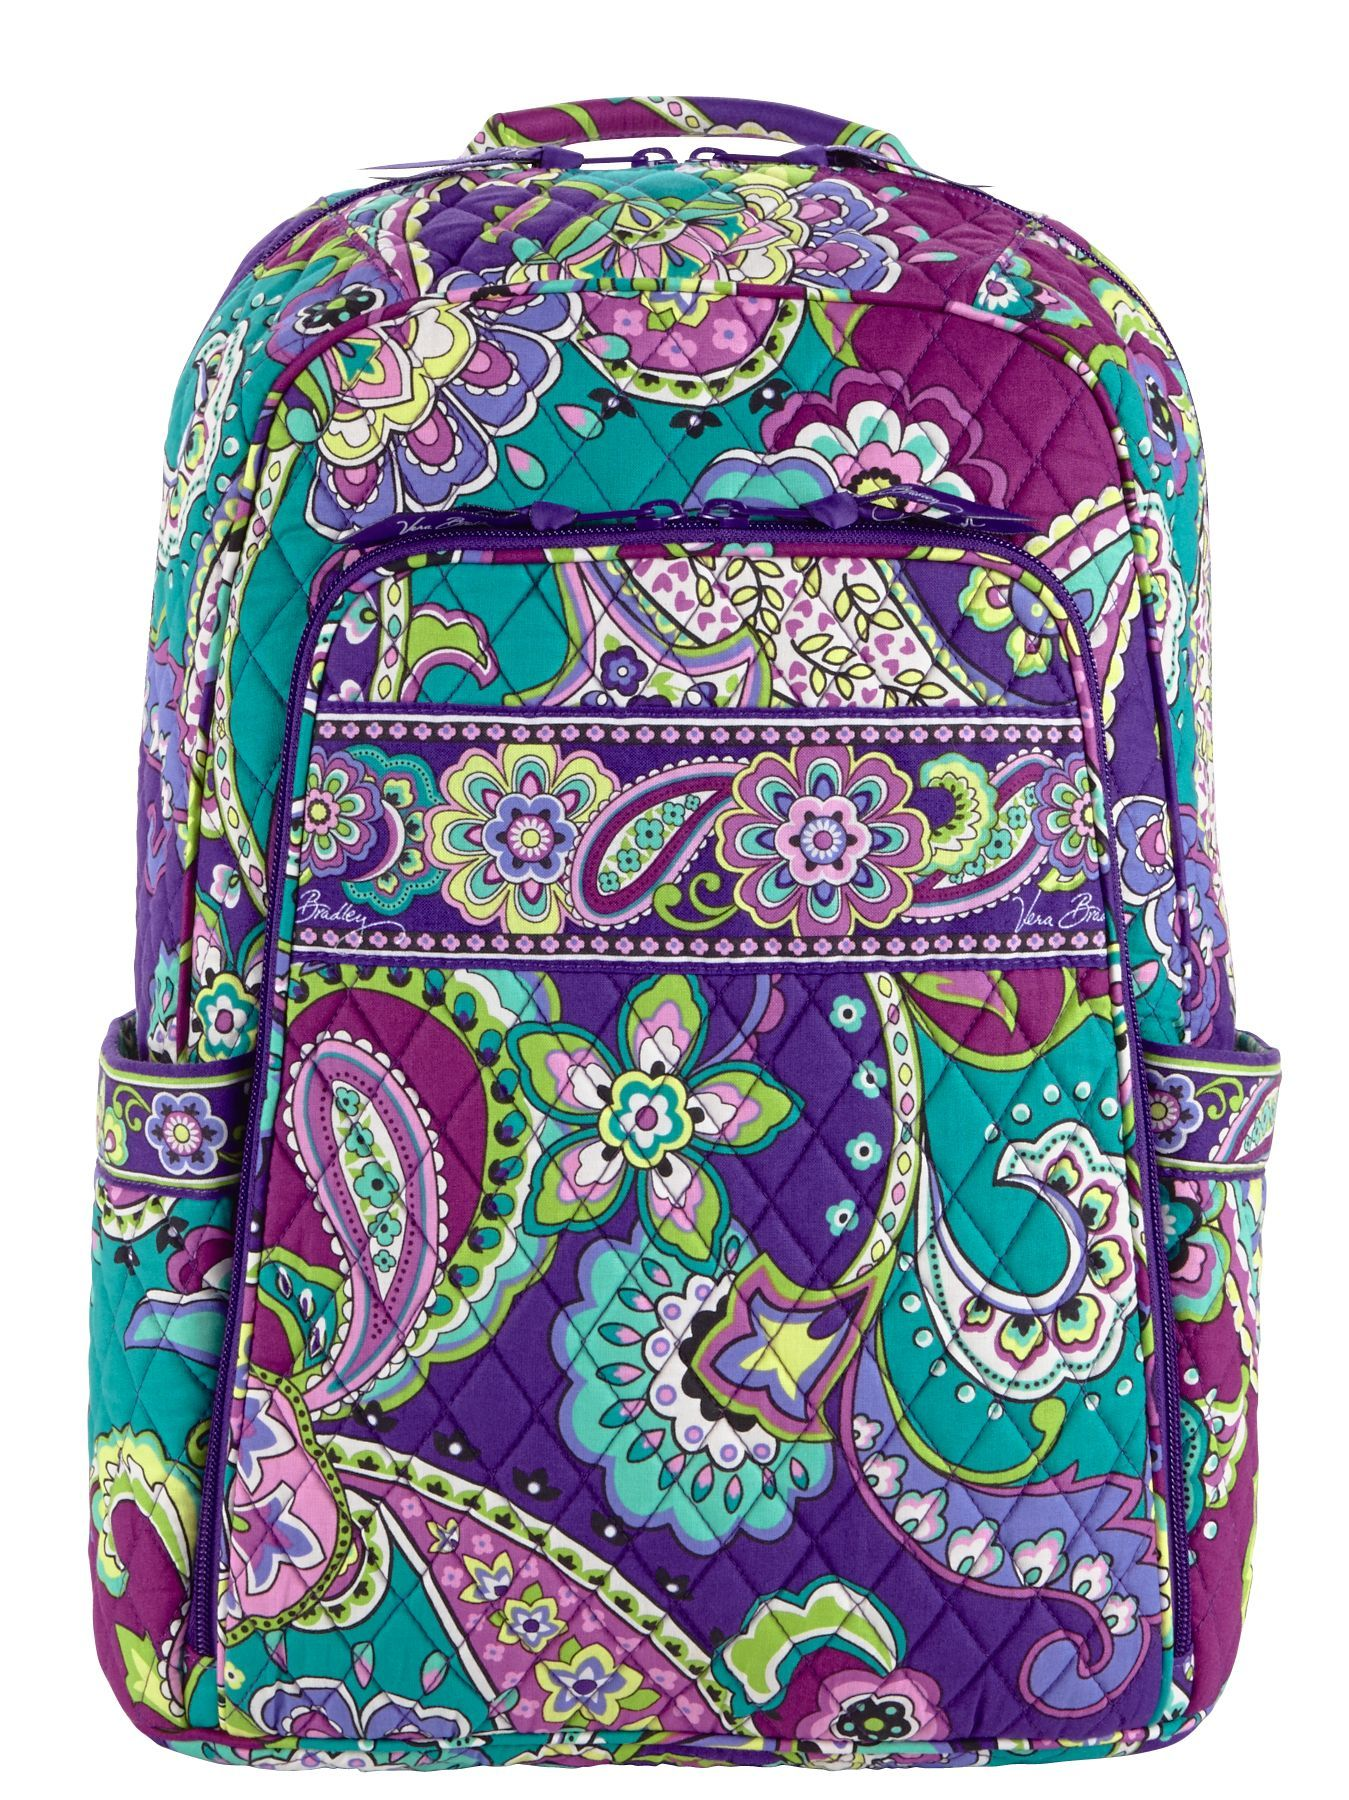 bf893fb558 Vera Bradley Laptop Backpack in Heather 55